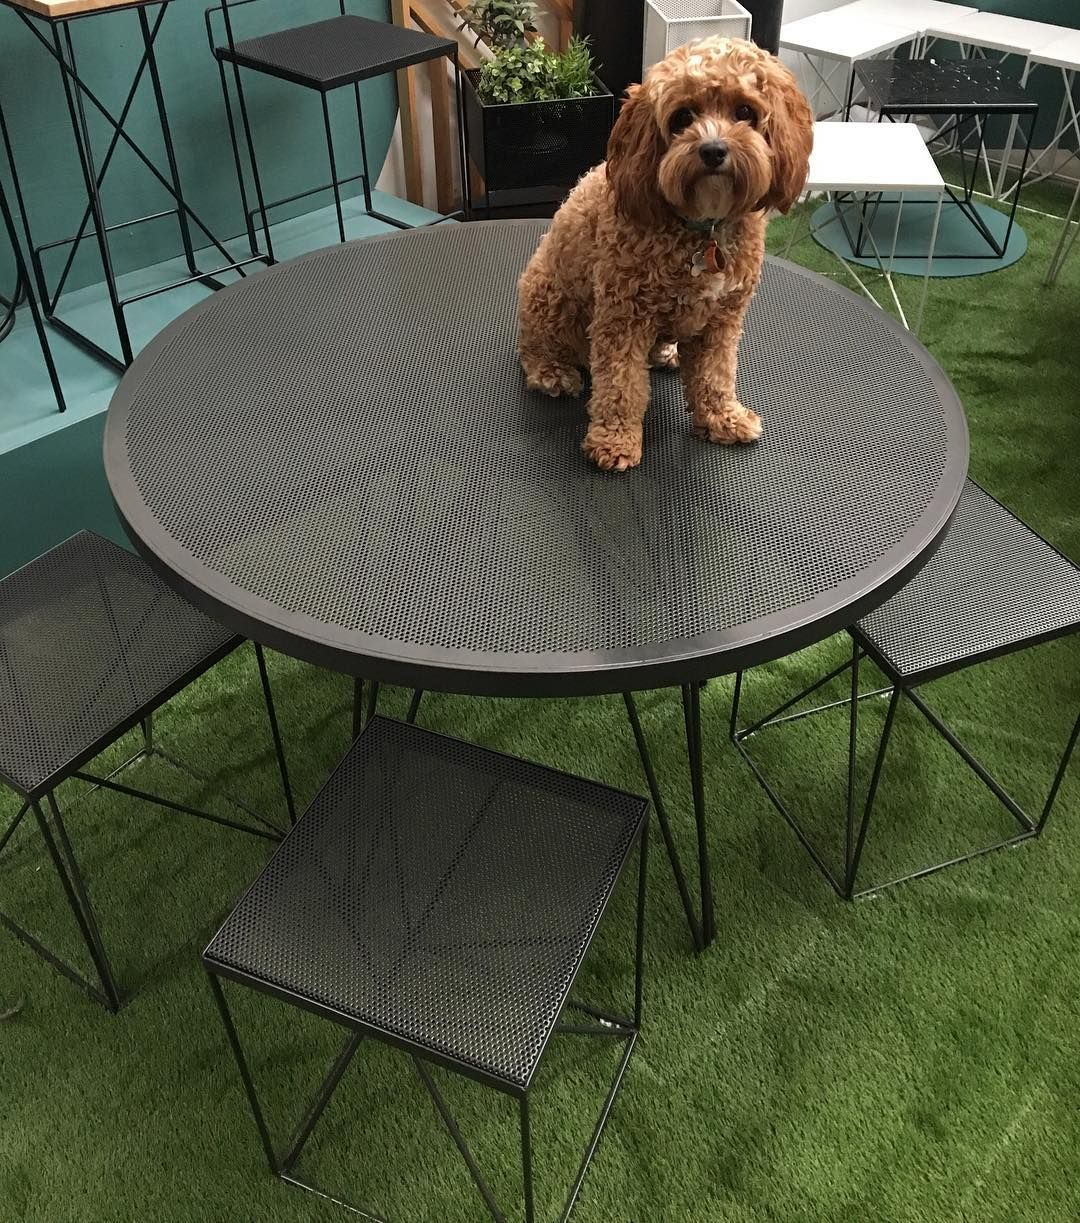 Redfox & Wilcox - Outdoor Furniture - Perforated - Dark Grey - Dog in the  Workshop - Redfox & Wilcox - Outdoor Furniture - Perforated - Dark Grey - Dog